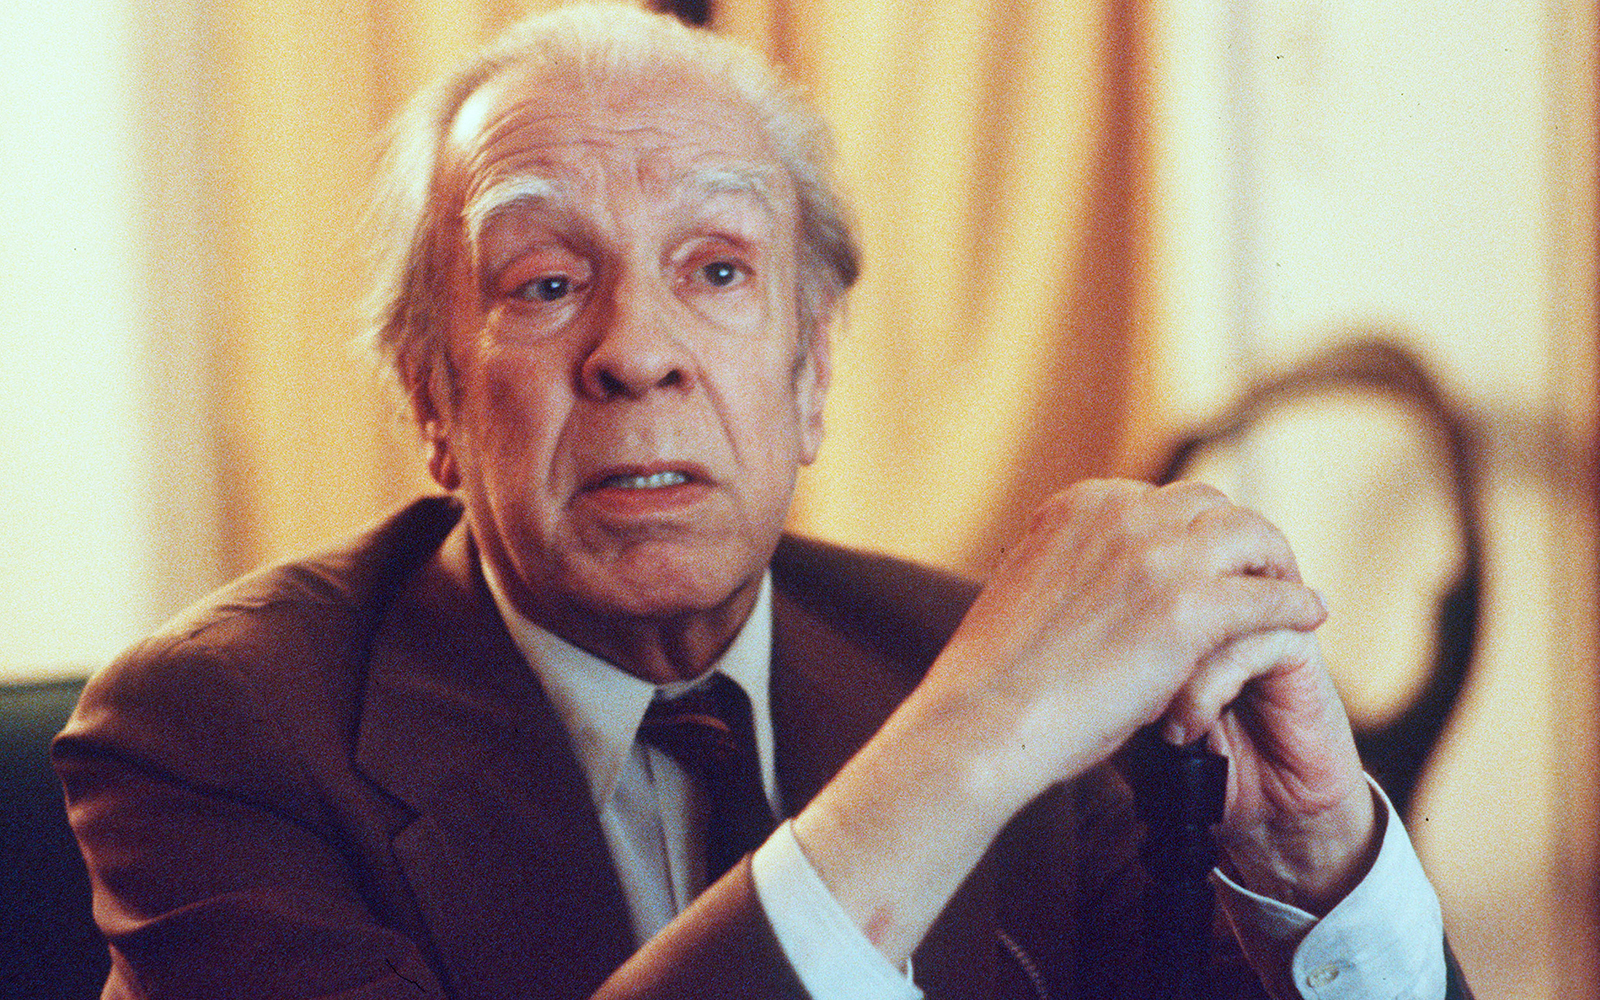 Jorge Luis Borges love for Israel and Jews revealed in